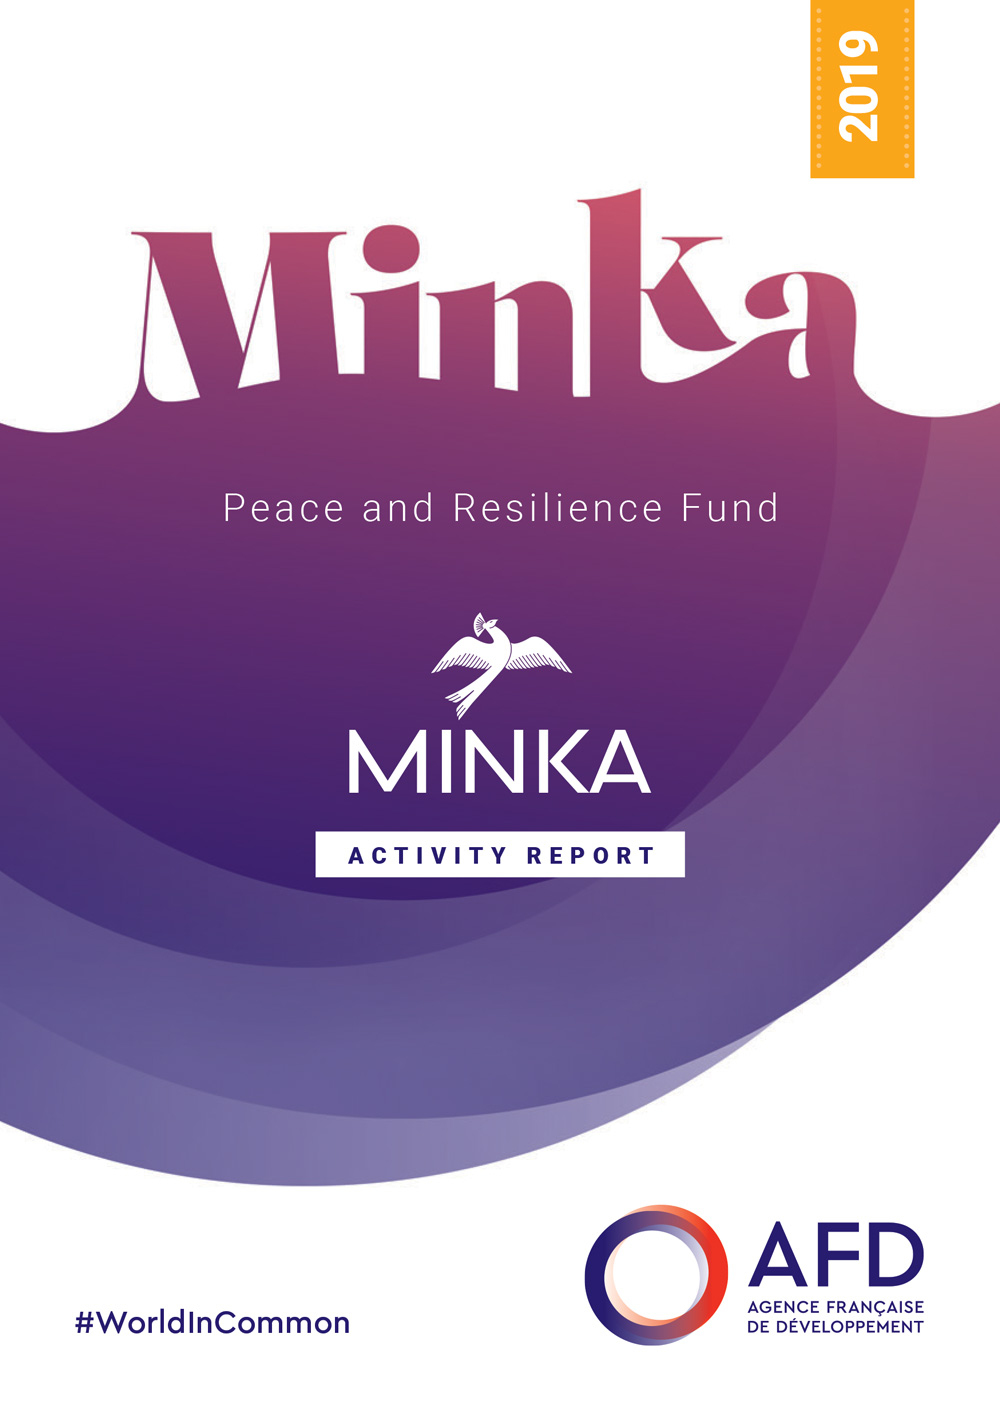 Minka Peace and Resilience Fund - 2019 Activity Report